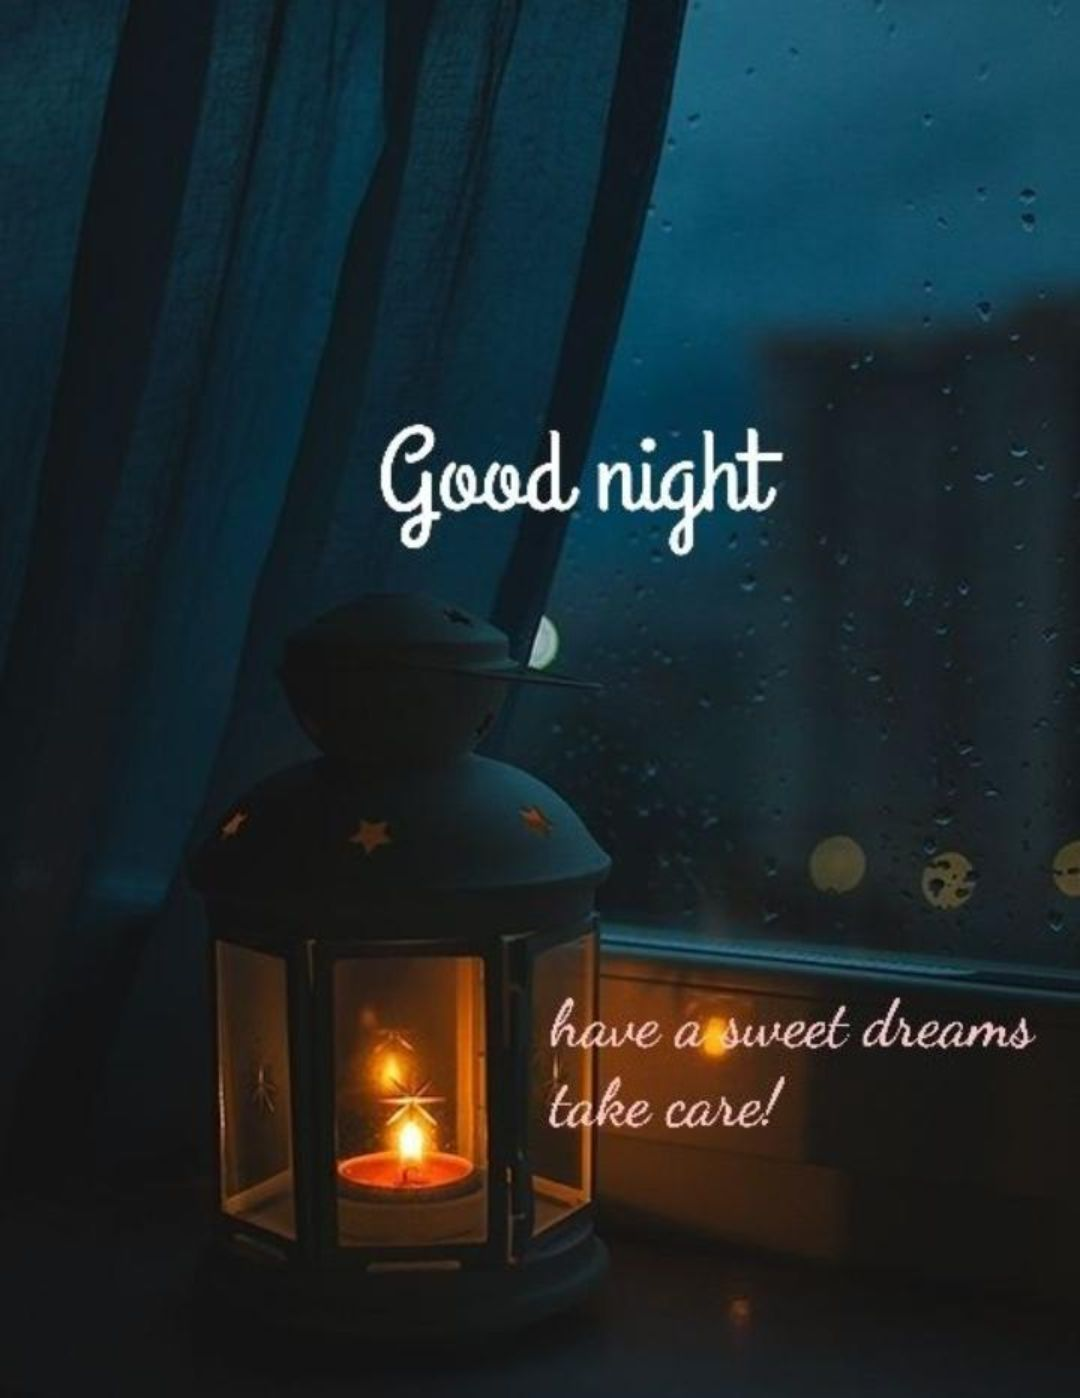 🌙 गुड नाईट - Good night have a sweet dreams take care ! - ShareChat